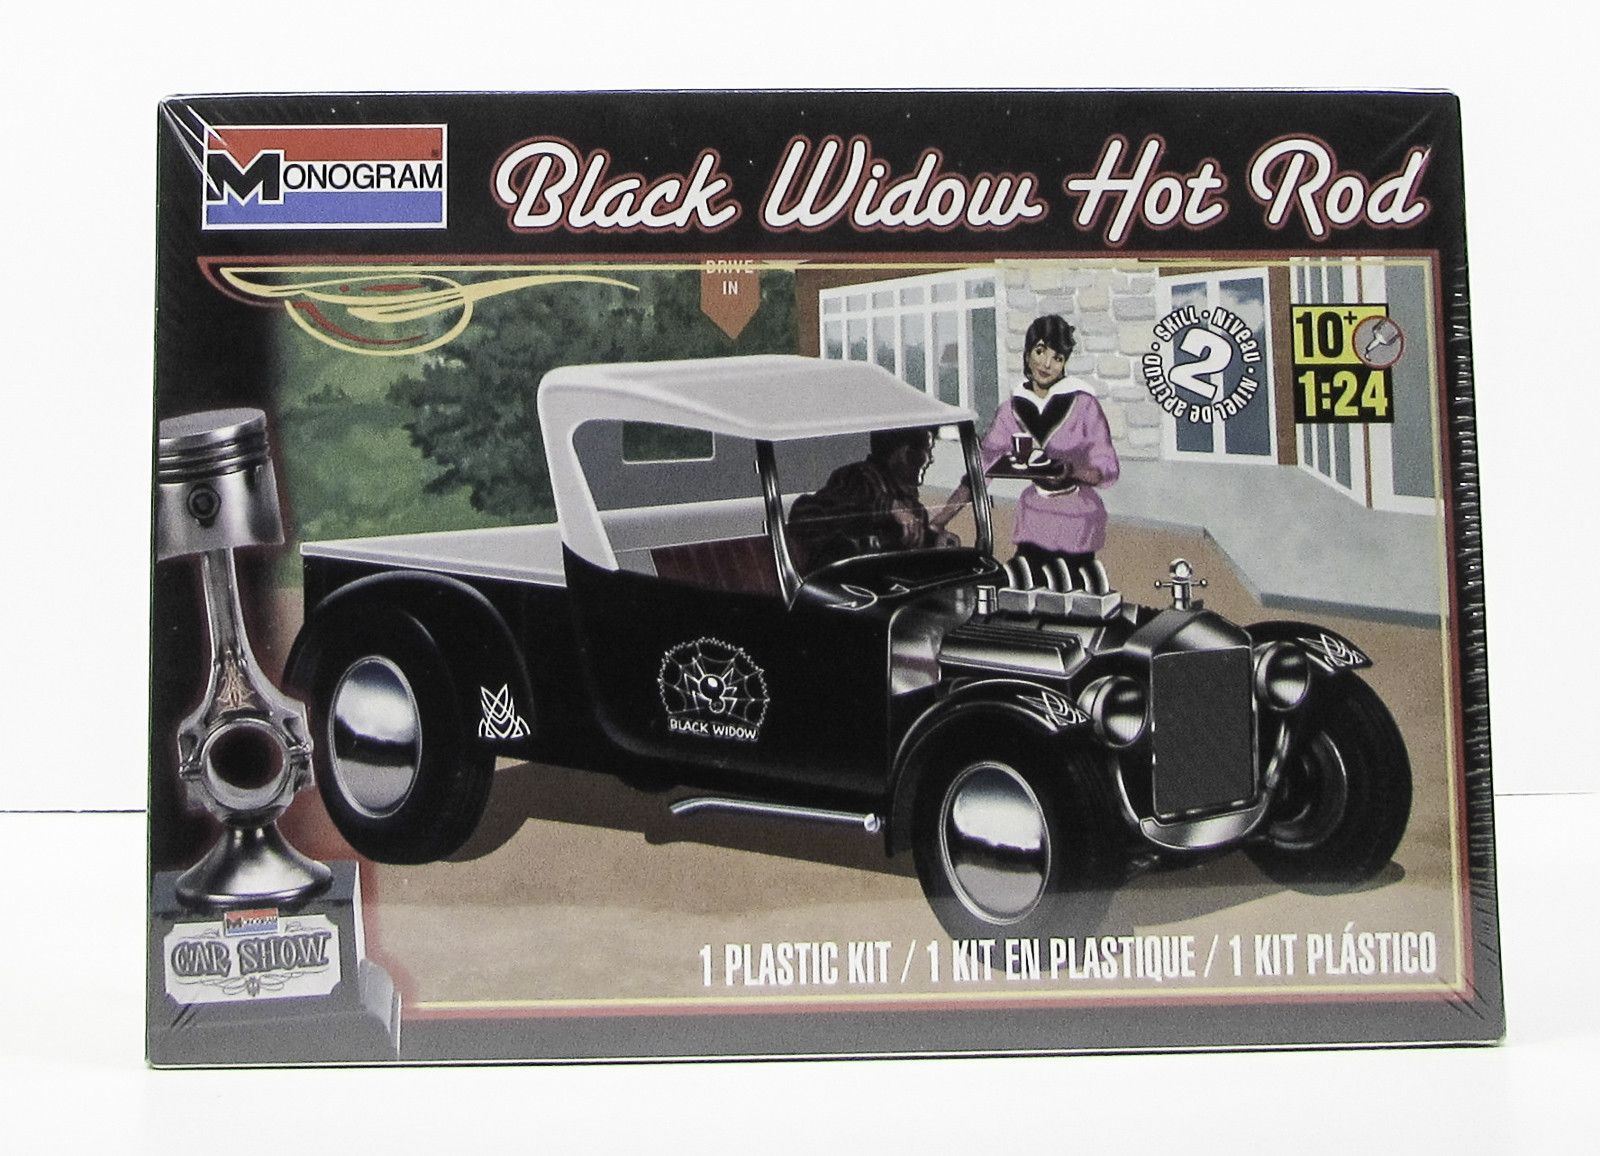 Black Widow Hot Rod Monogram 85-4324 1/24 New Car Plastic Model ...